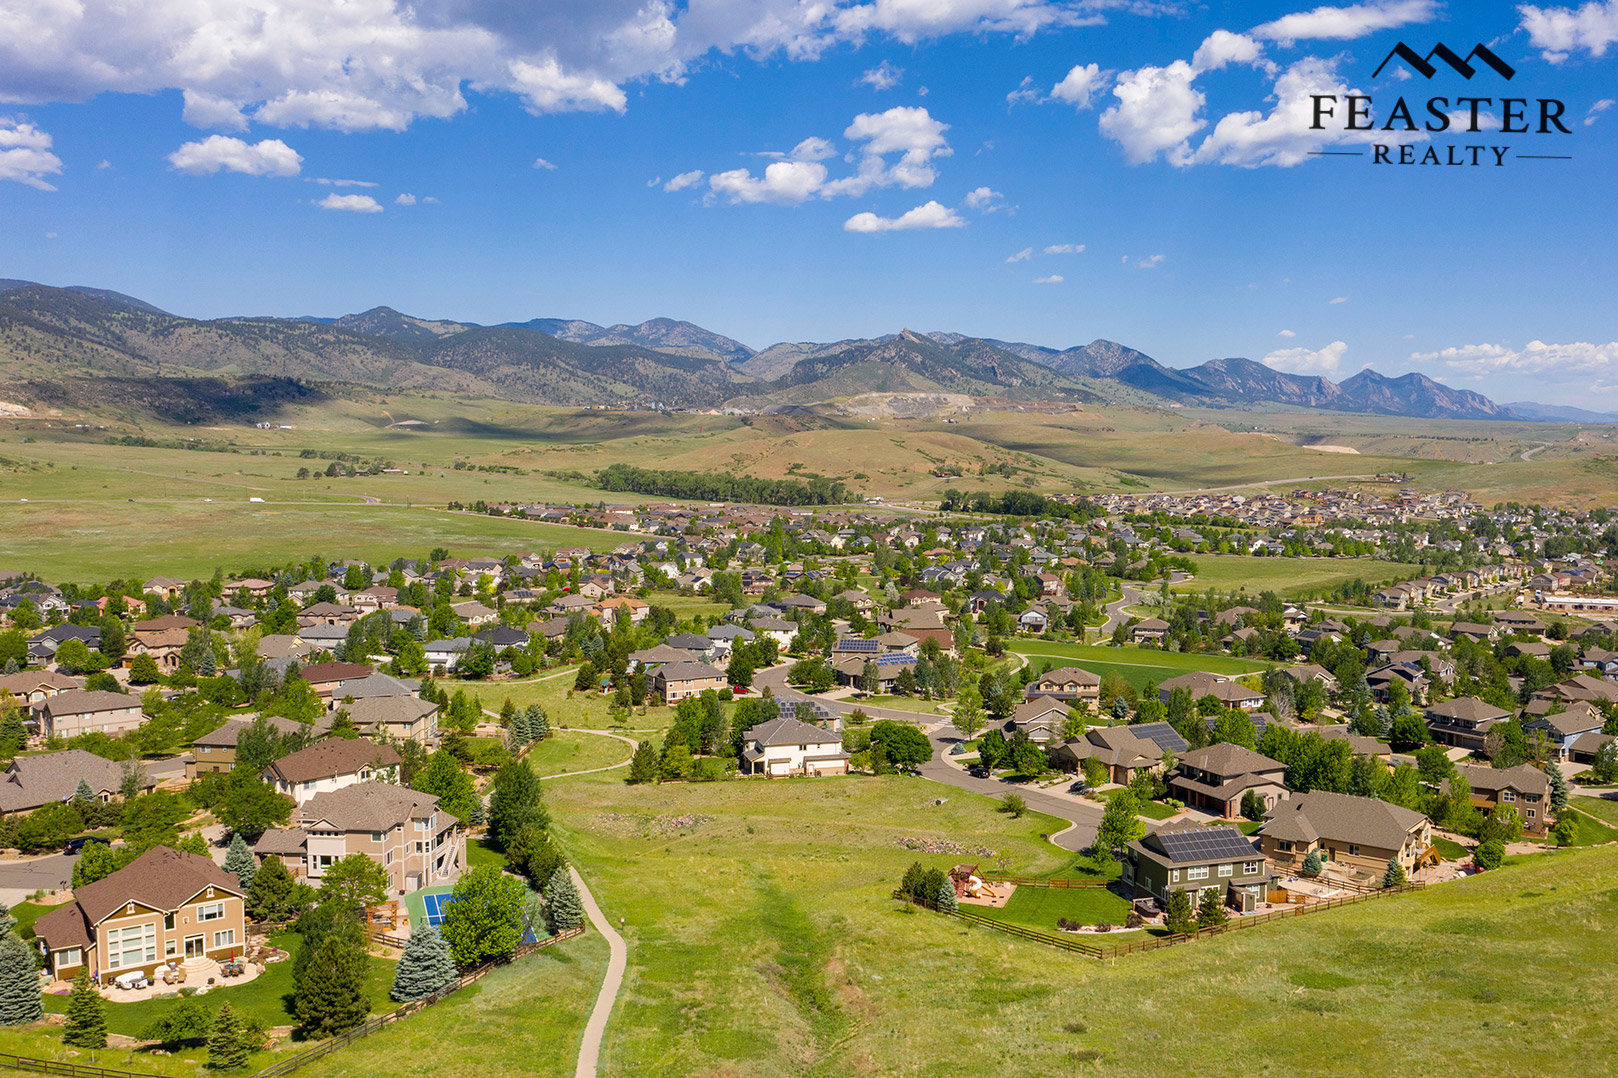 Tablerock Golden CO - Aerial View of Neighborhood